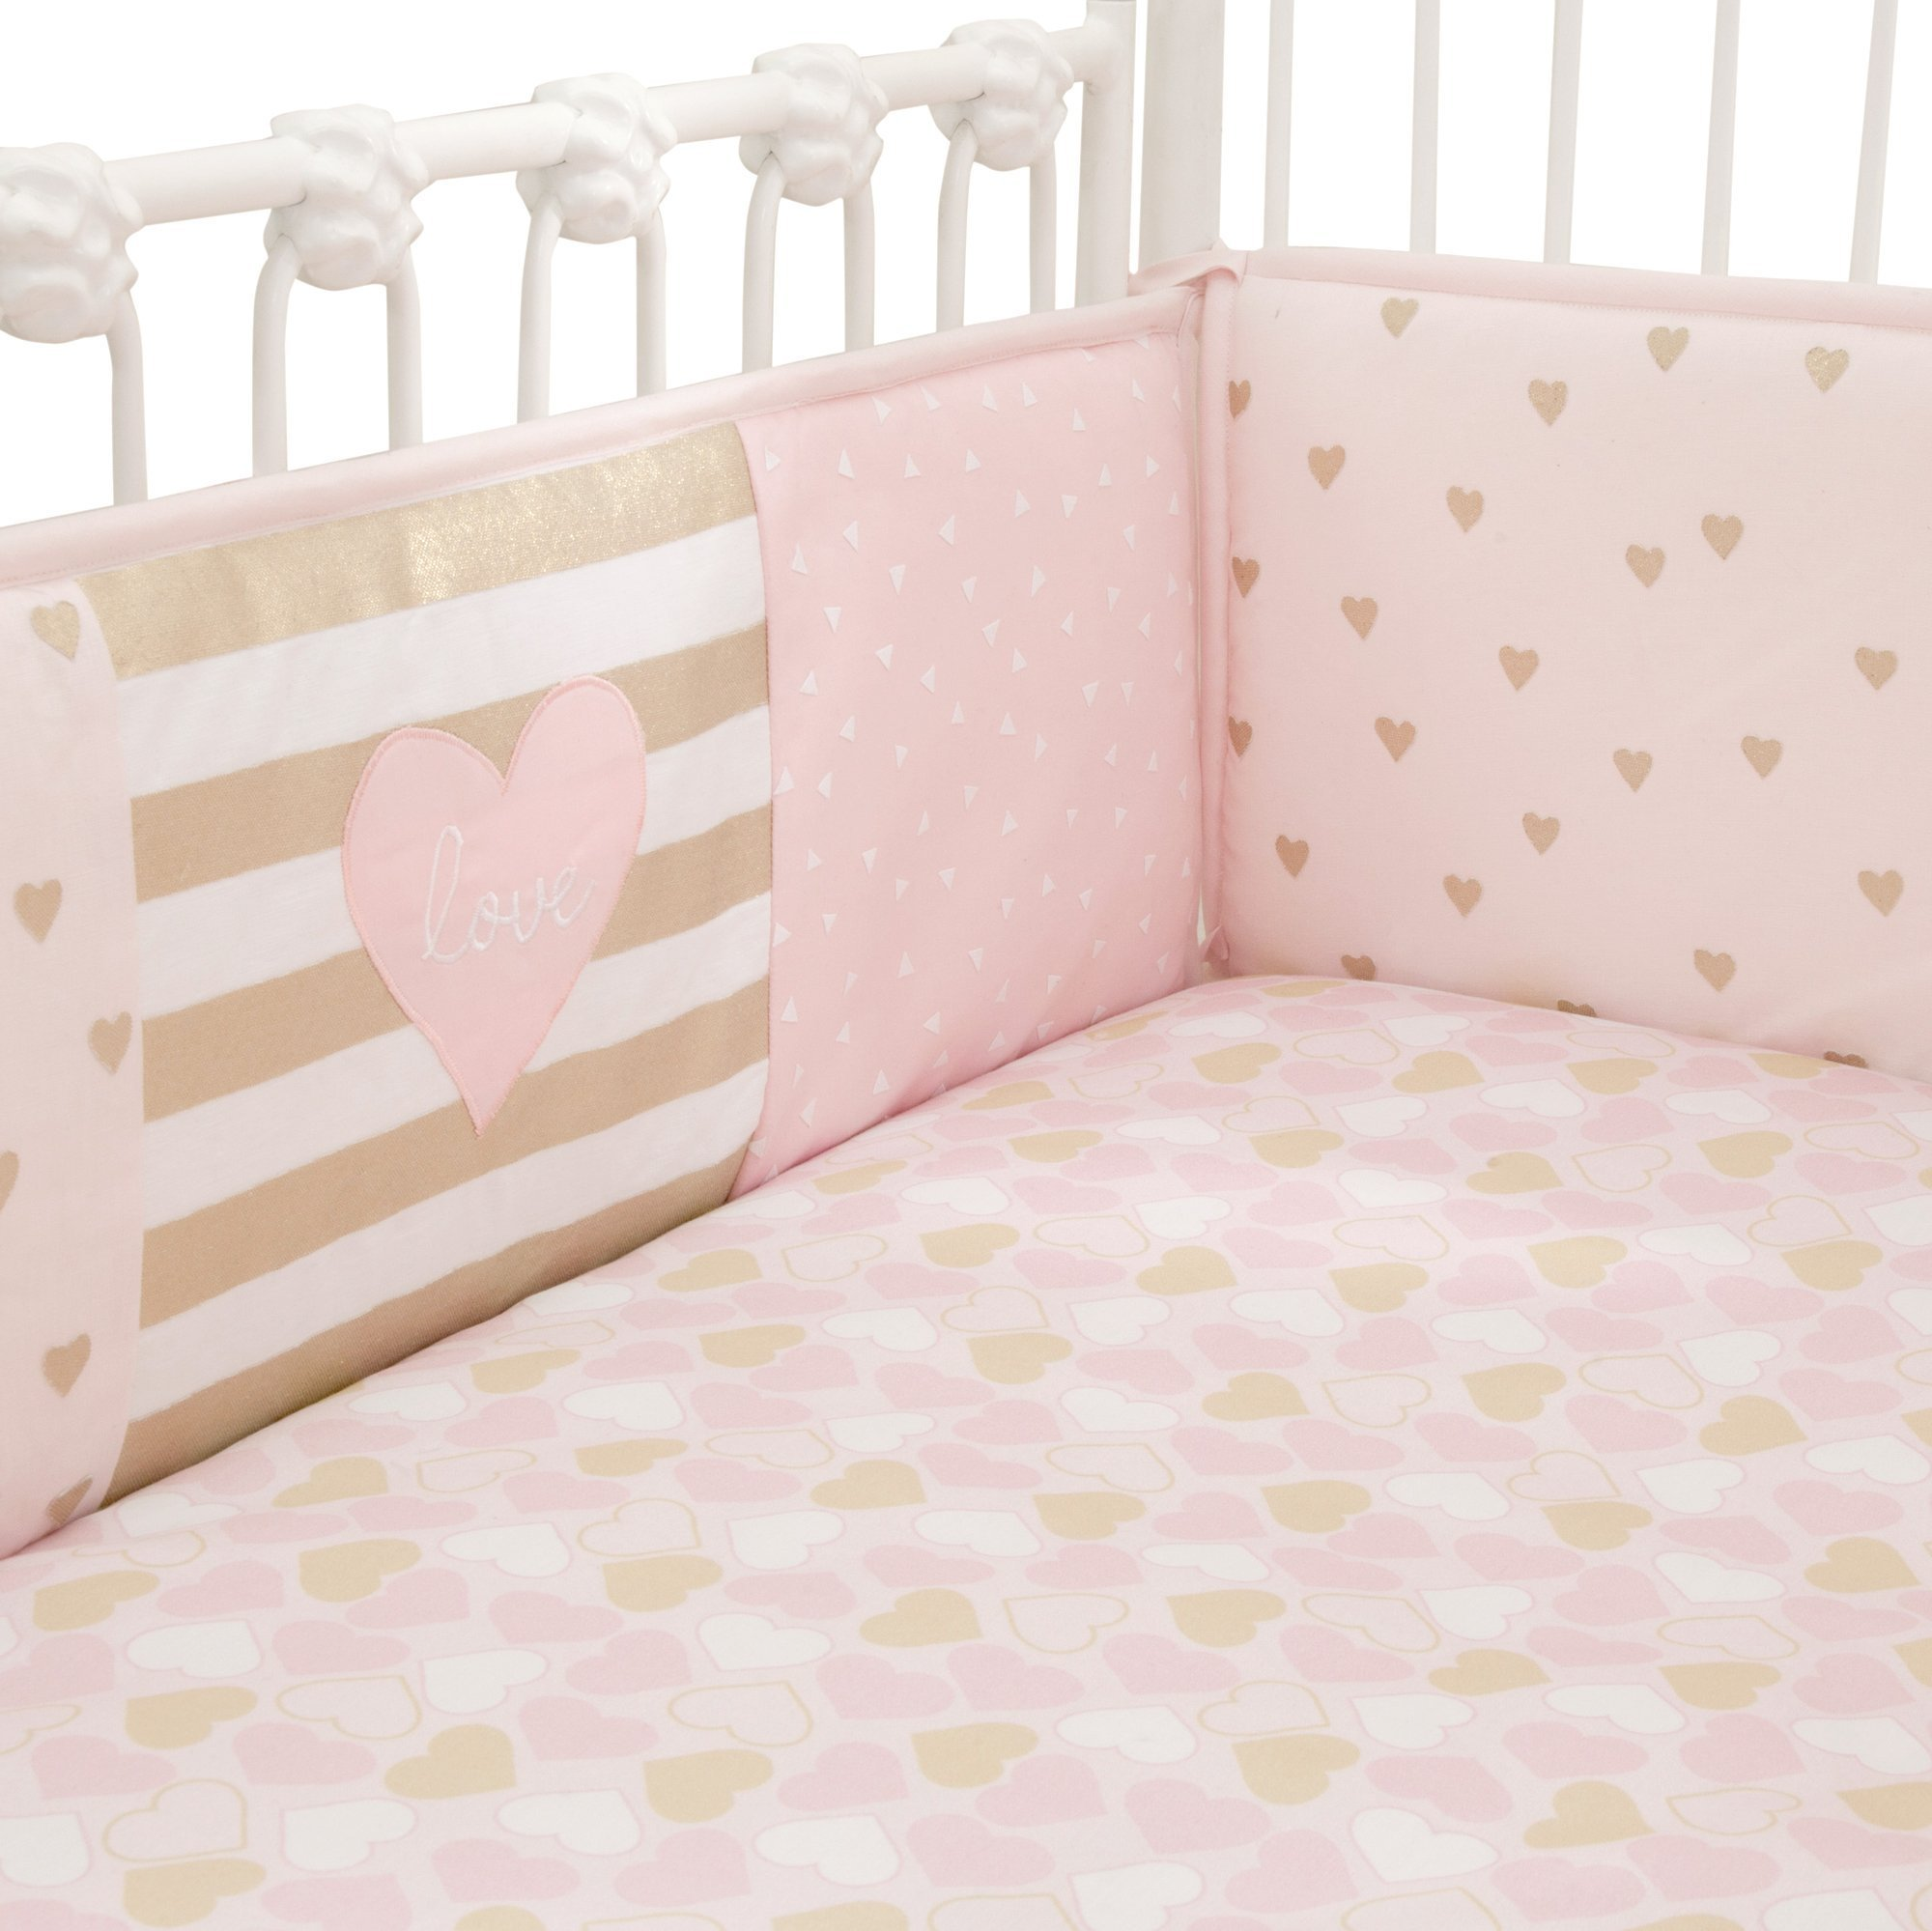 Lambs & Ivy Baby Love 4-Piece Crib Bumper - Pink/Gold/White with Hearts by Lambs & Ivy (Image #2)